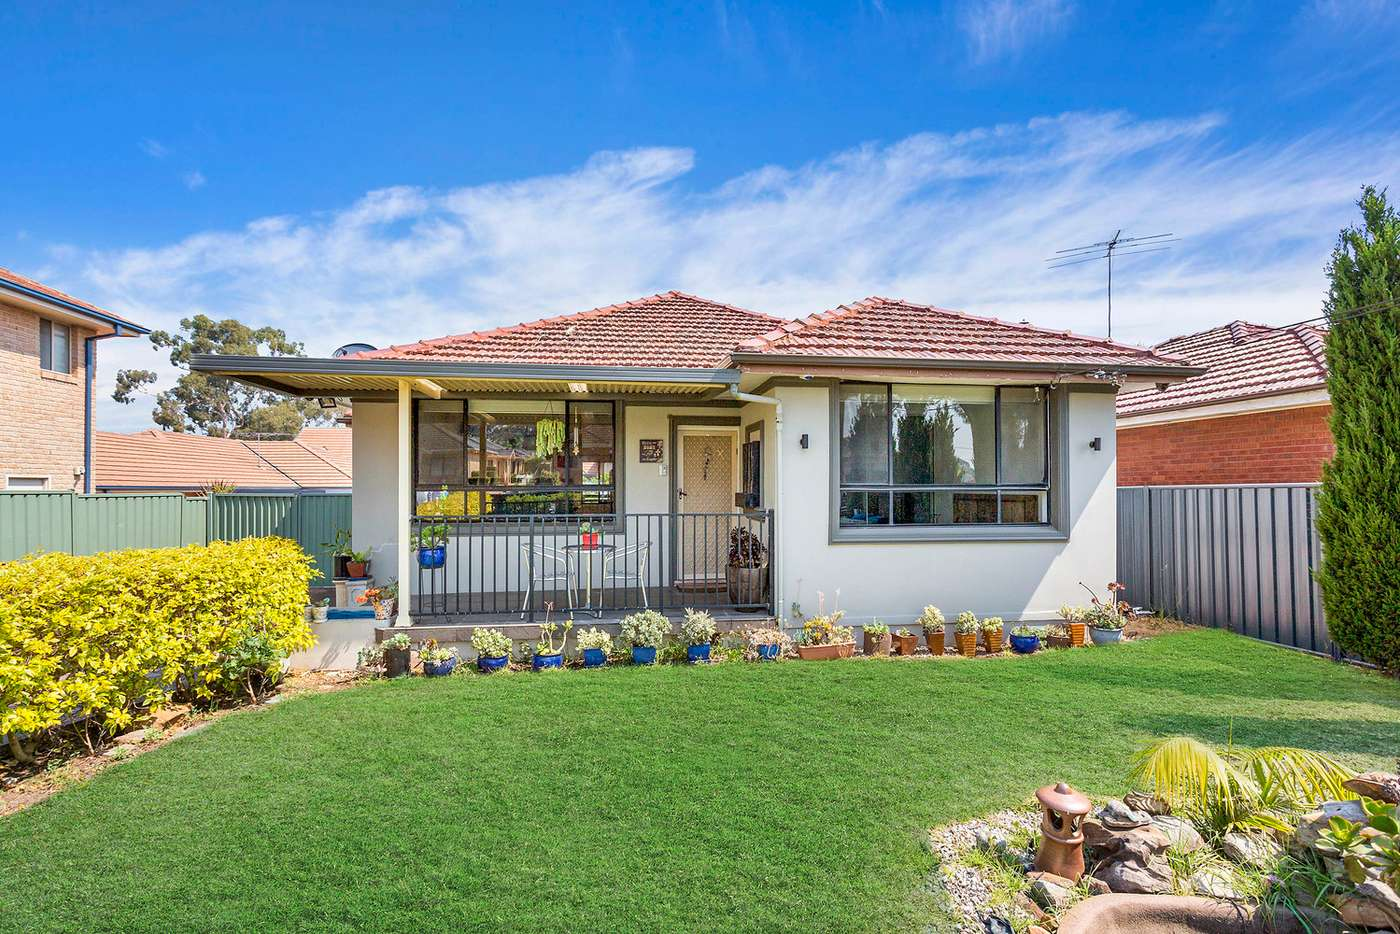 Main view of Homely house listing, 13 Beaconsfield Street, Revesby NSW 2212